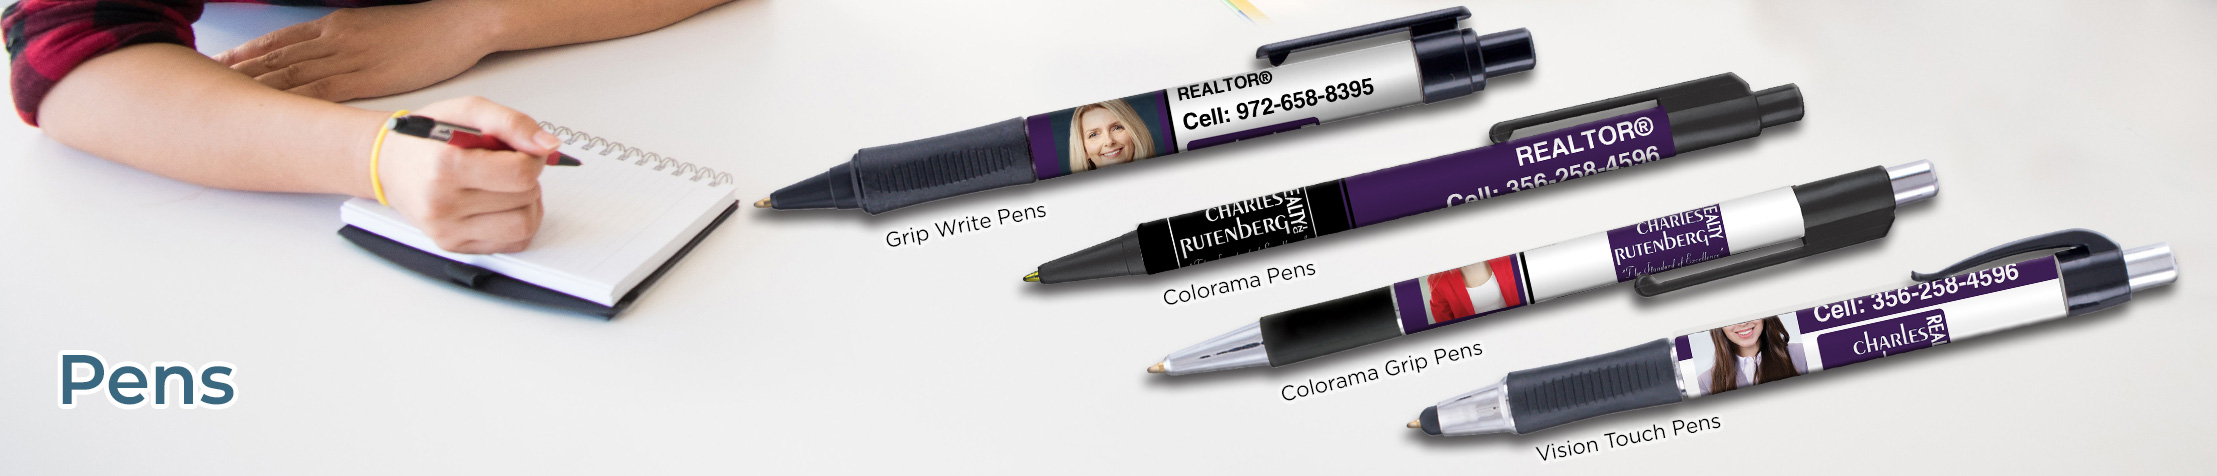 Charles Rutenberg Realty Real Estate Personalized Pens - Charles Rutenberg Realty promotional products: Grip Write Pens, Colorama Pens, Vision Touch Pens, and Colorama Grip Pens | BestPrintBuy.com